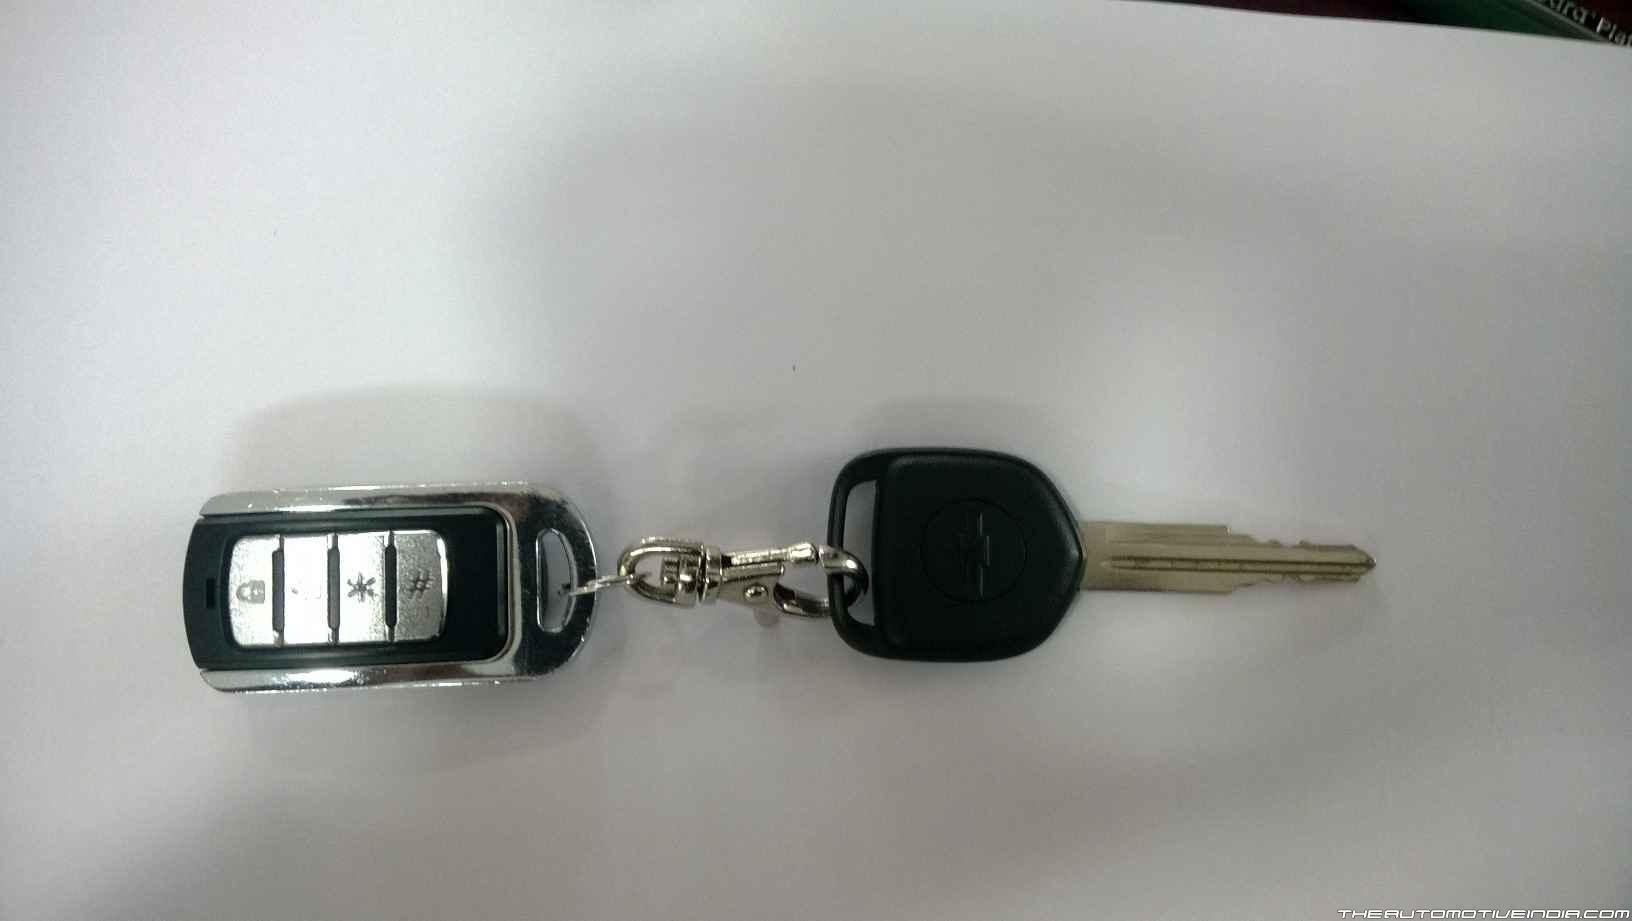 Lost car key replacement Toowoomba Car key replacement